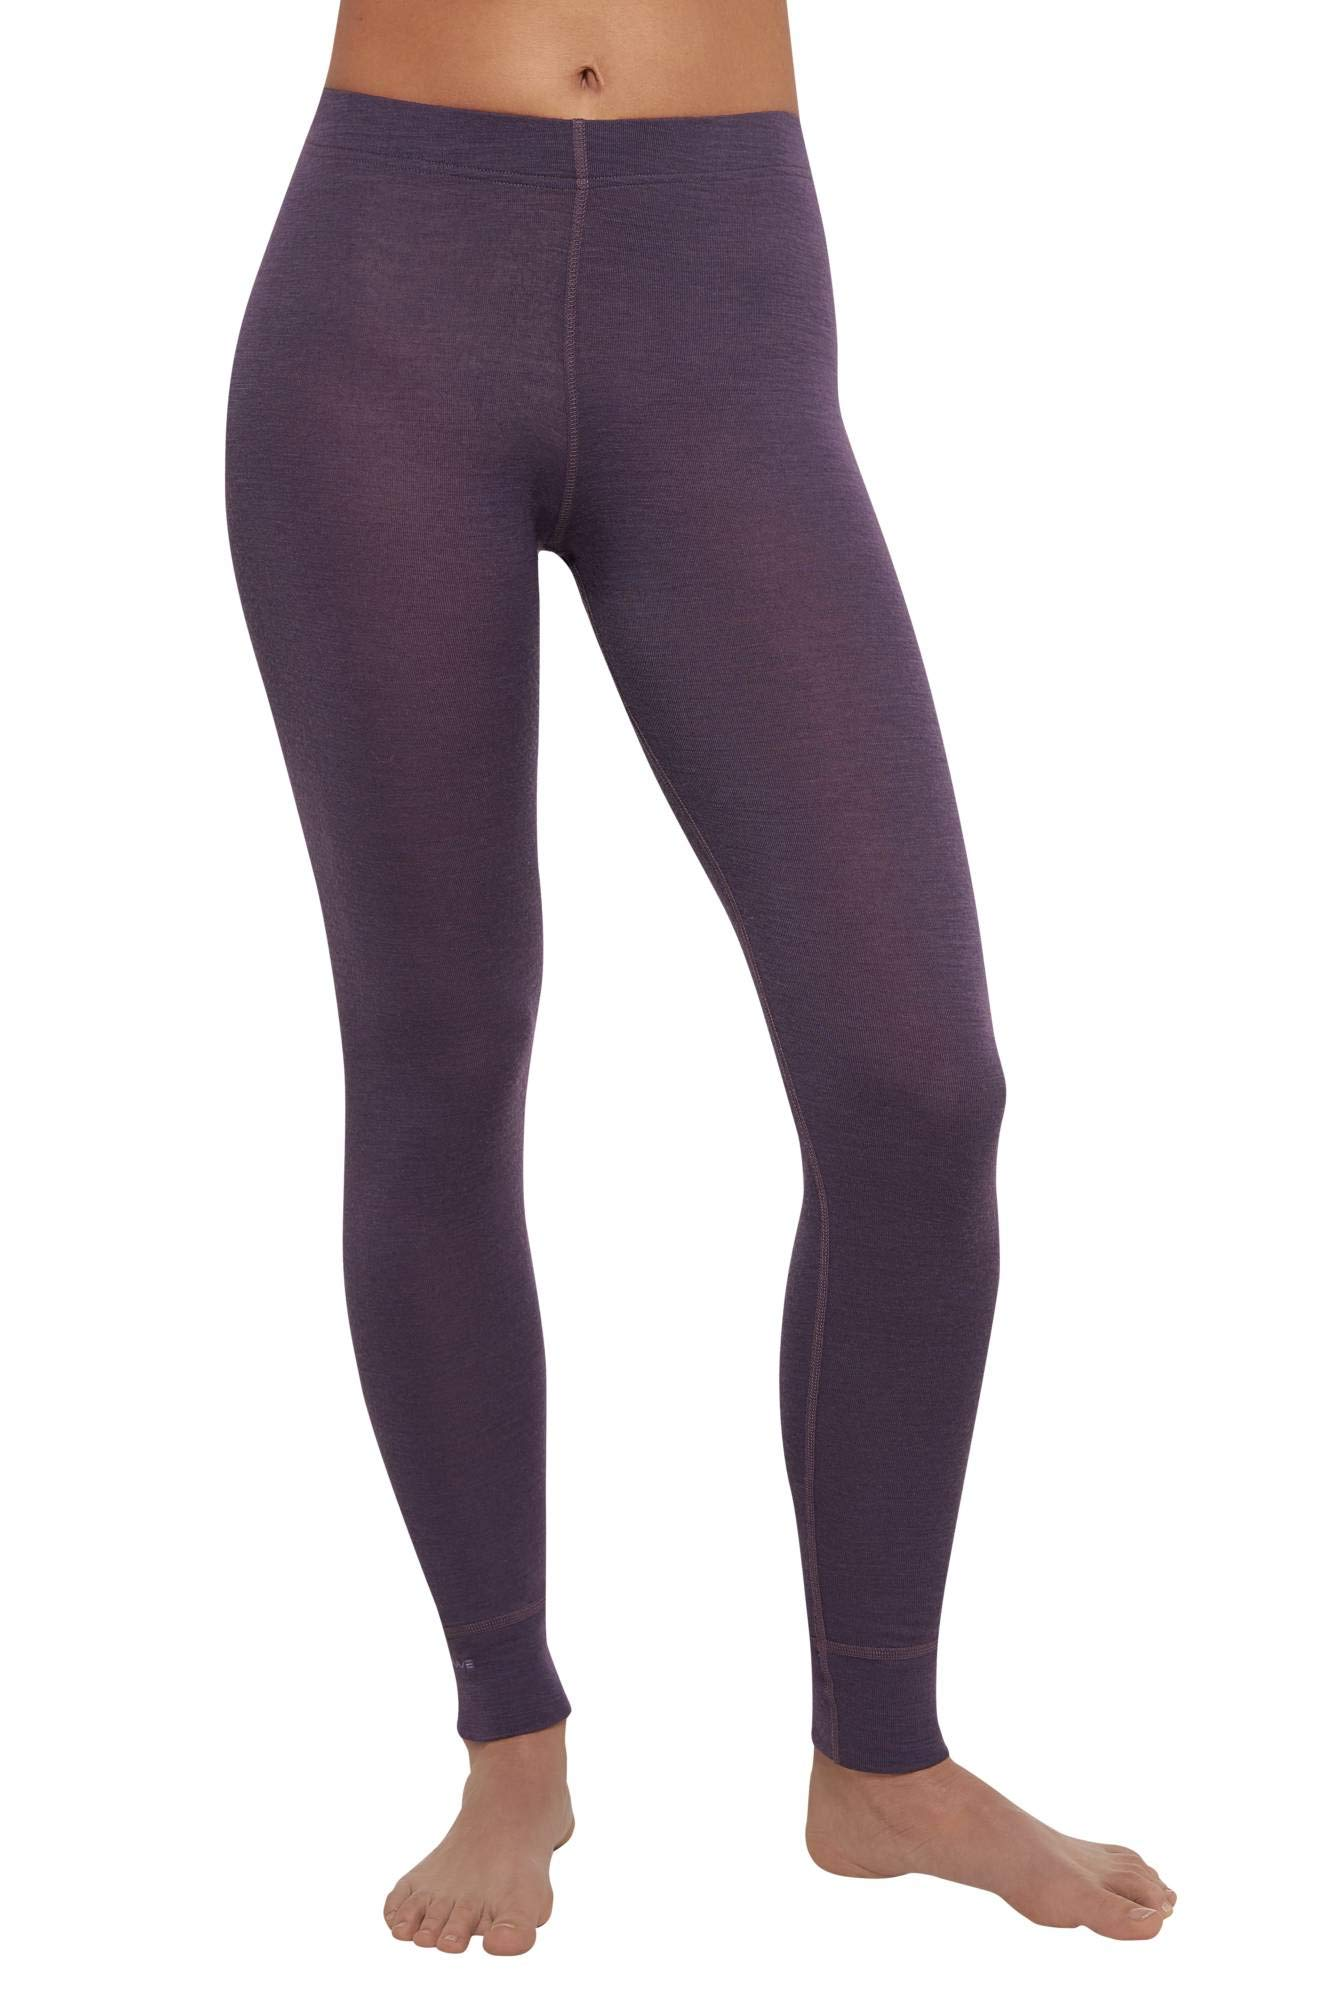 Thermowave - Merino Warm/Womens 100% Merino Wool 180 GSM Pants/Black Plum - Small by Thermowave